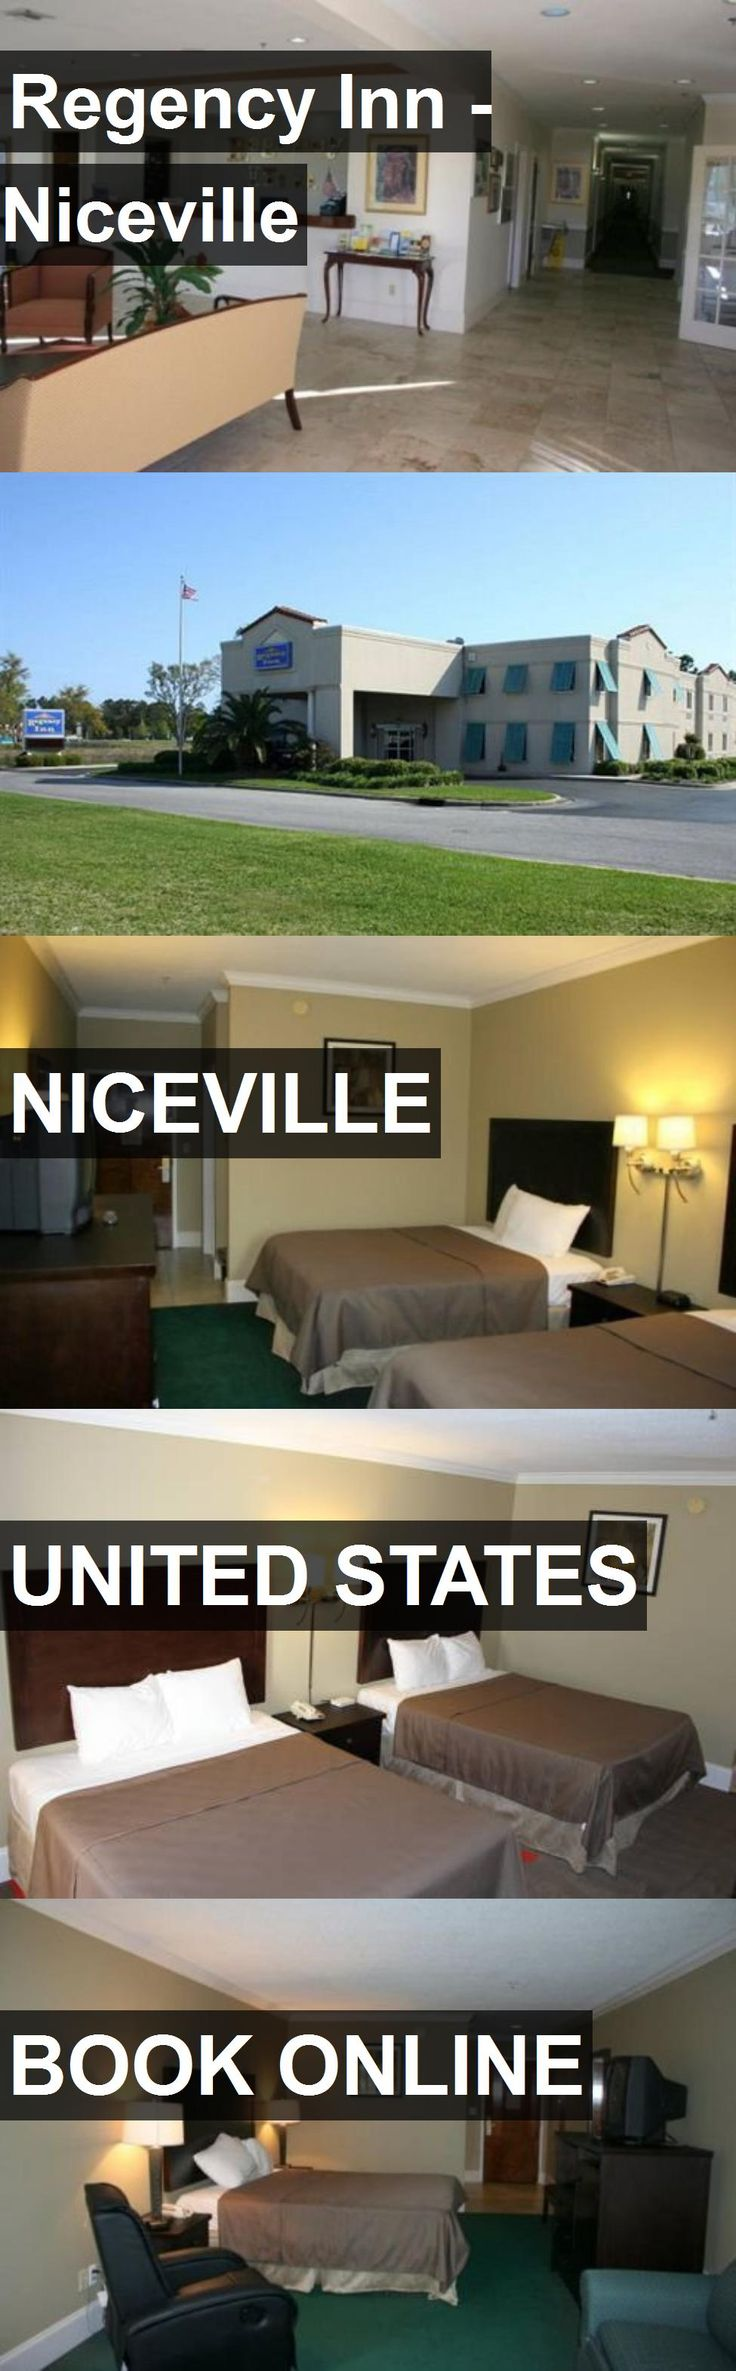 Hotel Regency Inn - Niceville in Niceville, United States. For more information, photos, reviews and best prices please follow the link. #UnitedStates #Niceville #travel #vacation #hotel